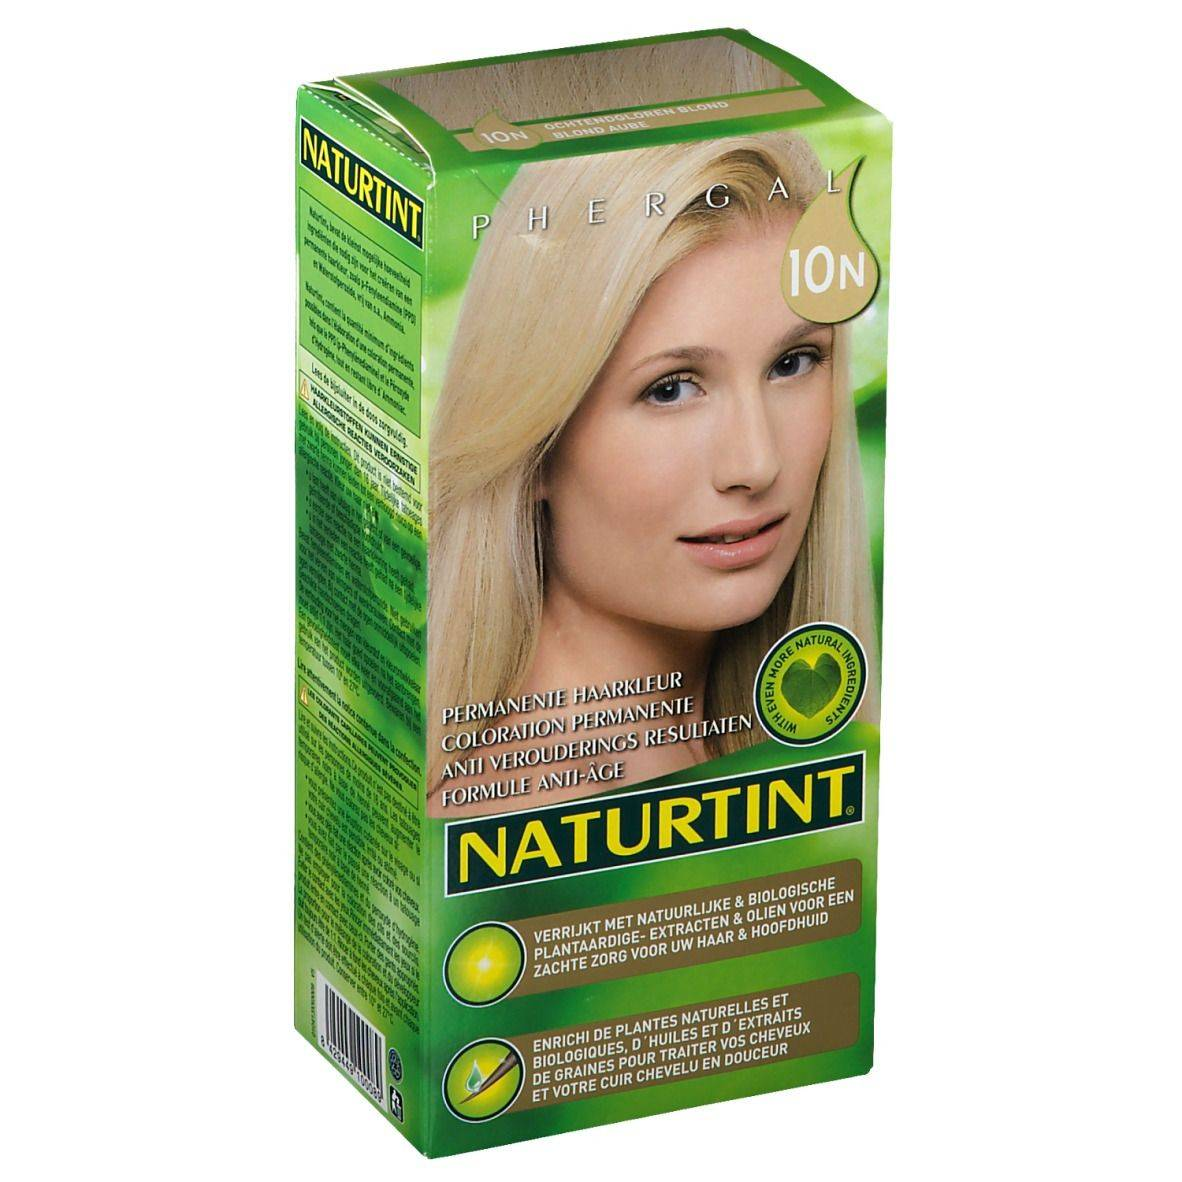 NATURTINT® Coloration Permanente 10N Blond Aube ml emballage(s) combi